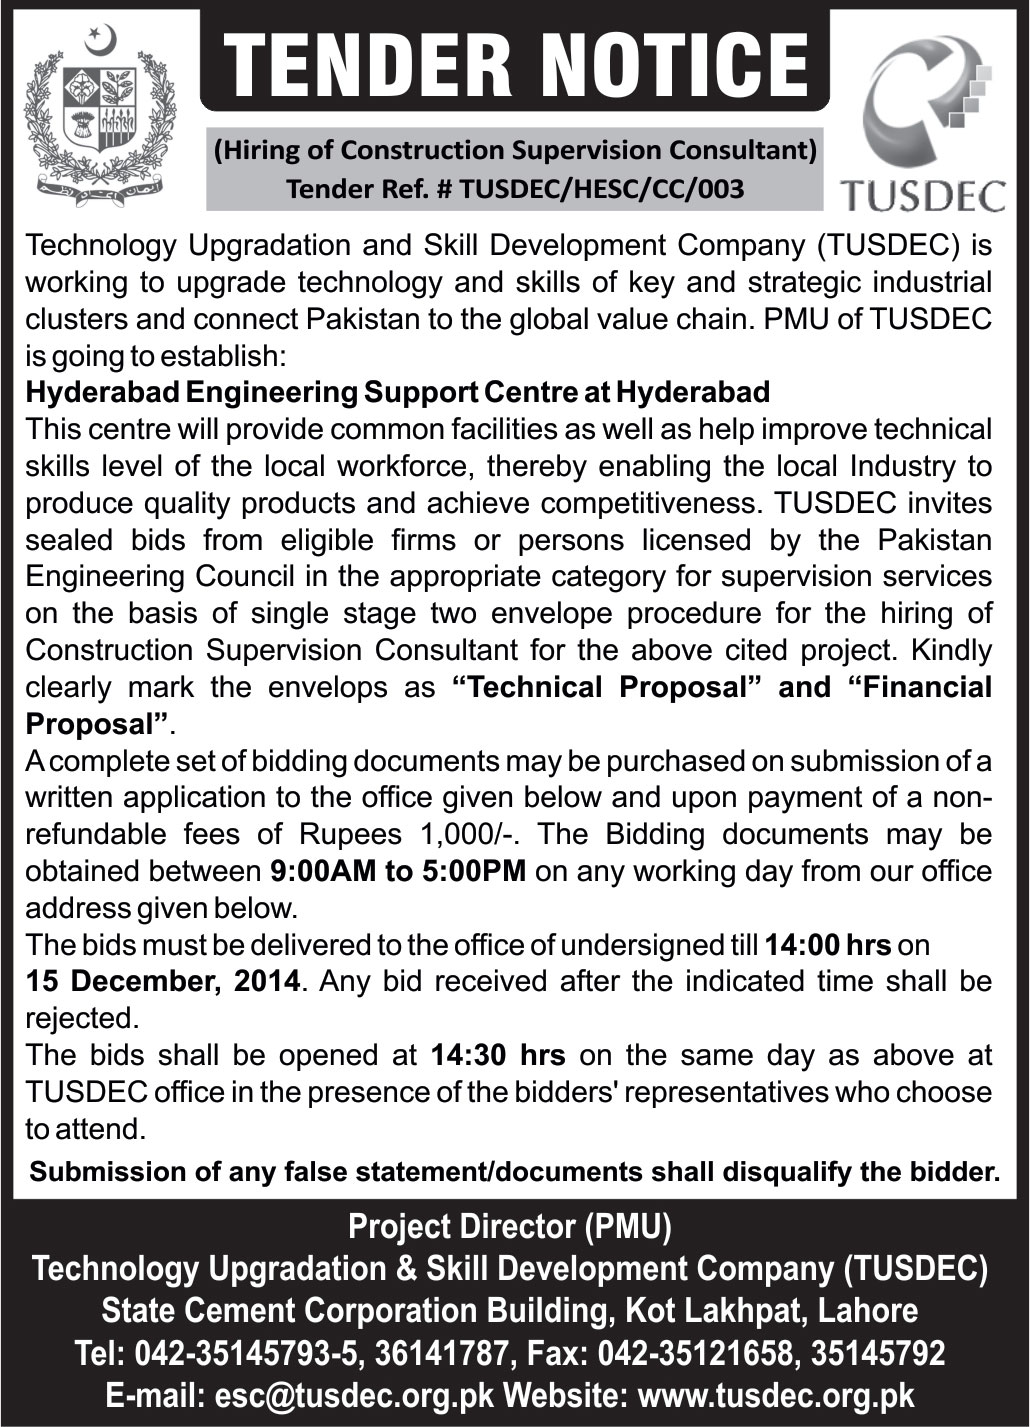 Tender Notice for Solar Lab